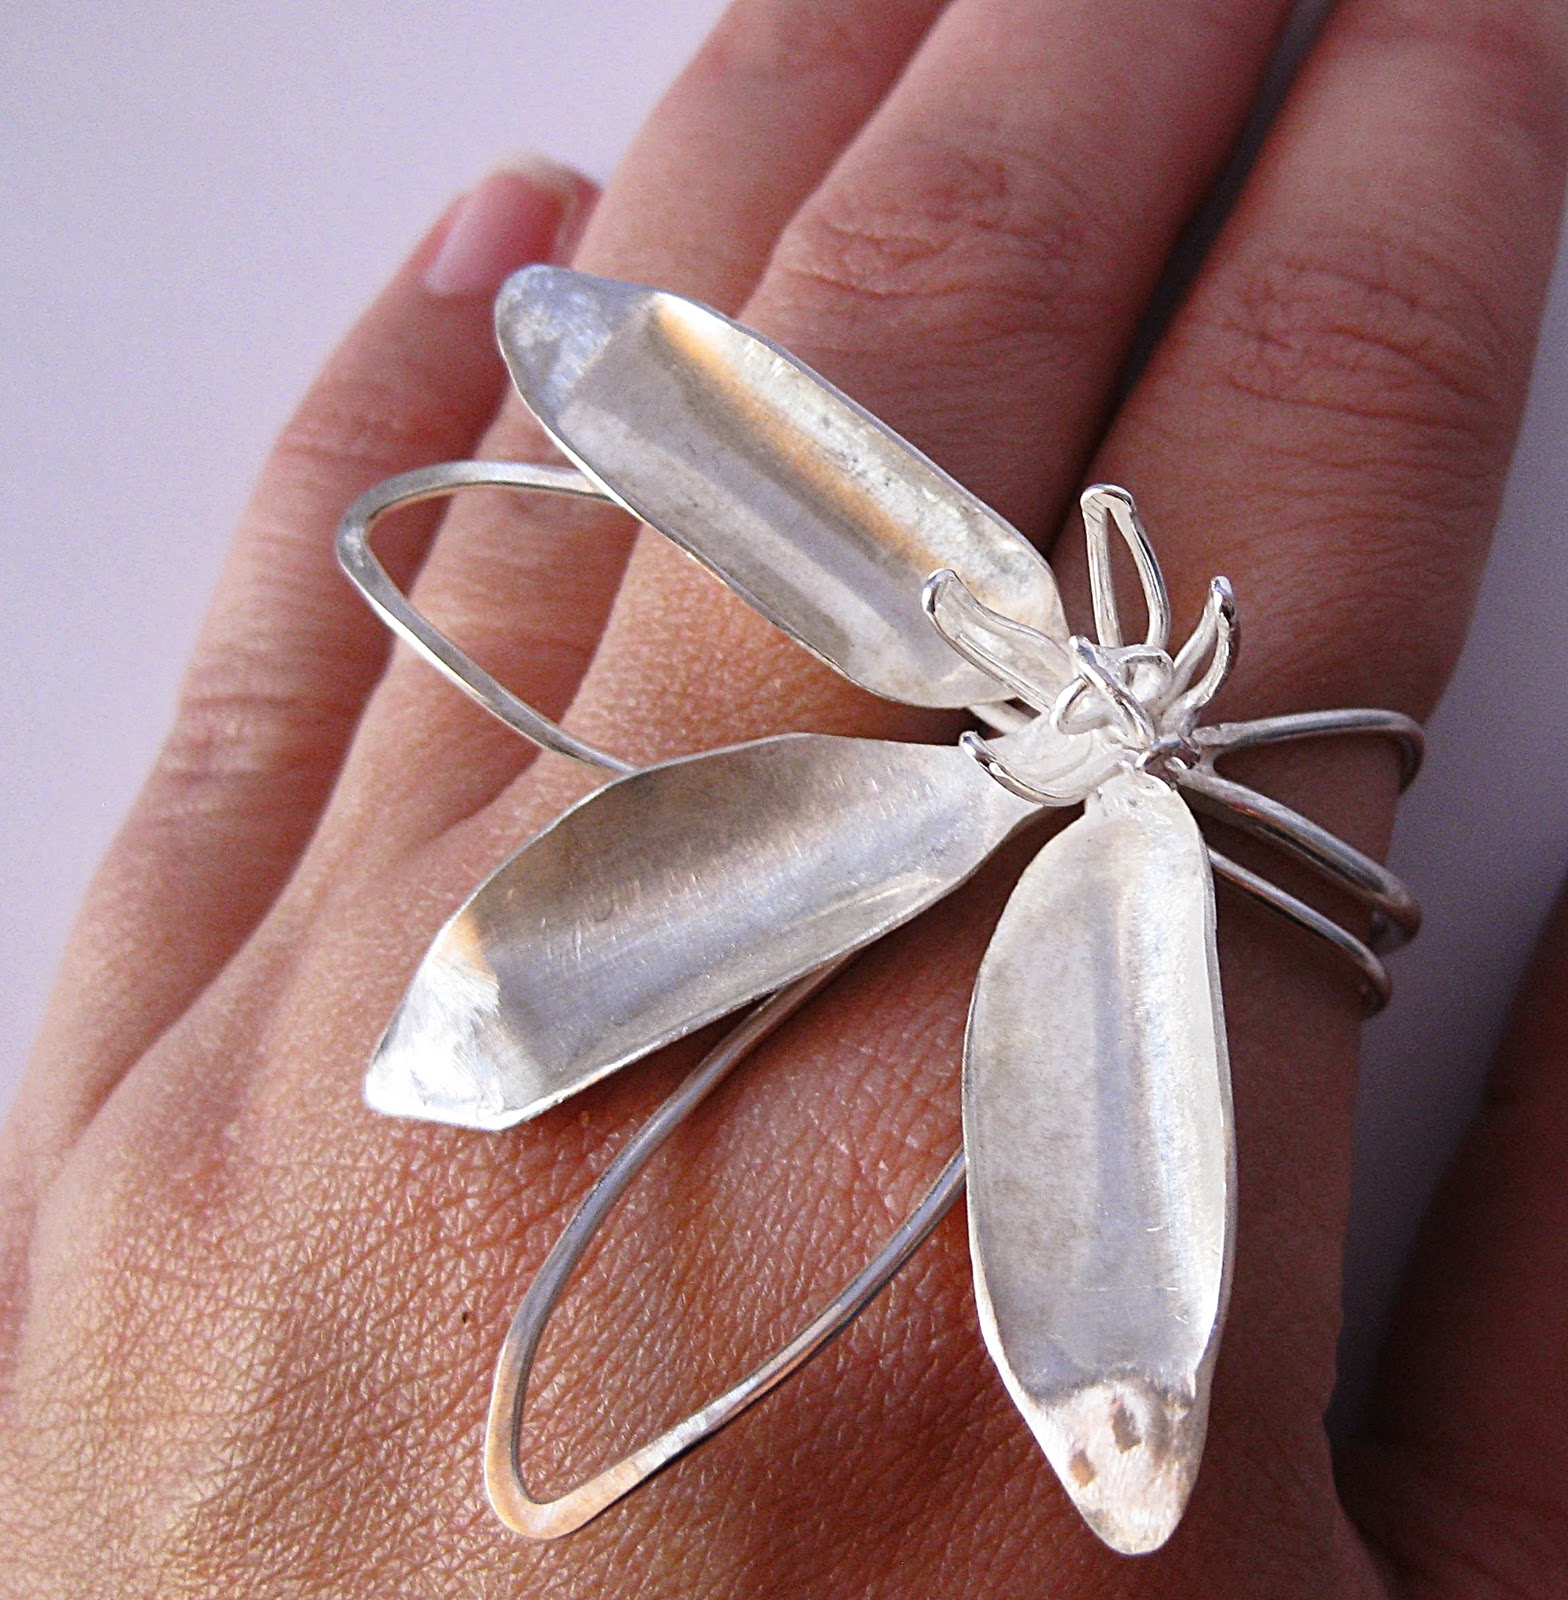 http://michellepujoljewellery.bigcartel.com/product/deconstructed-myrtyle-cocktail-ring-in-sterling-silver